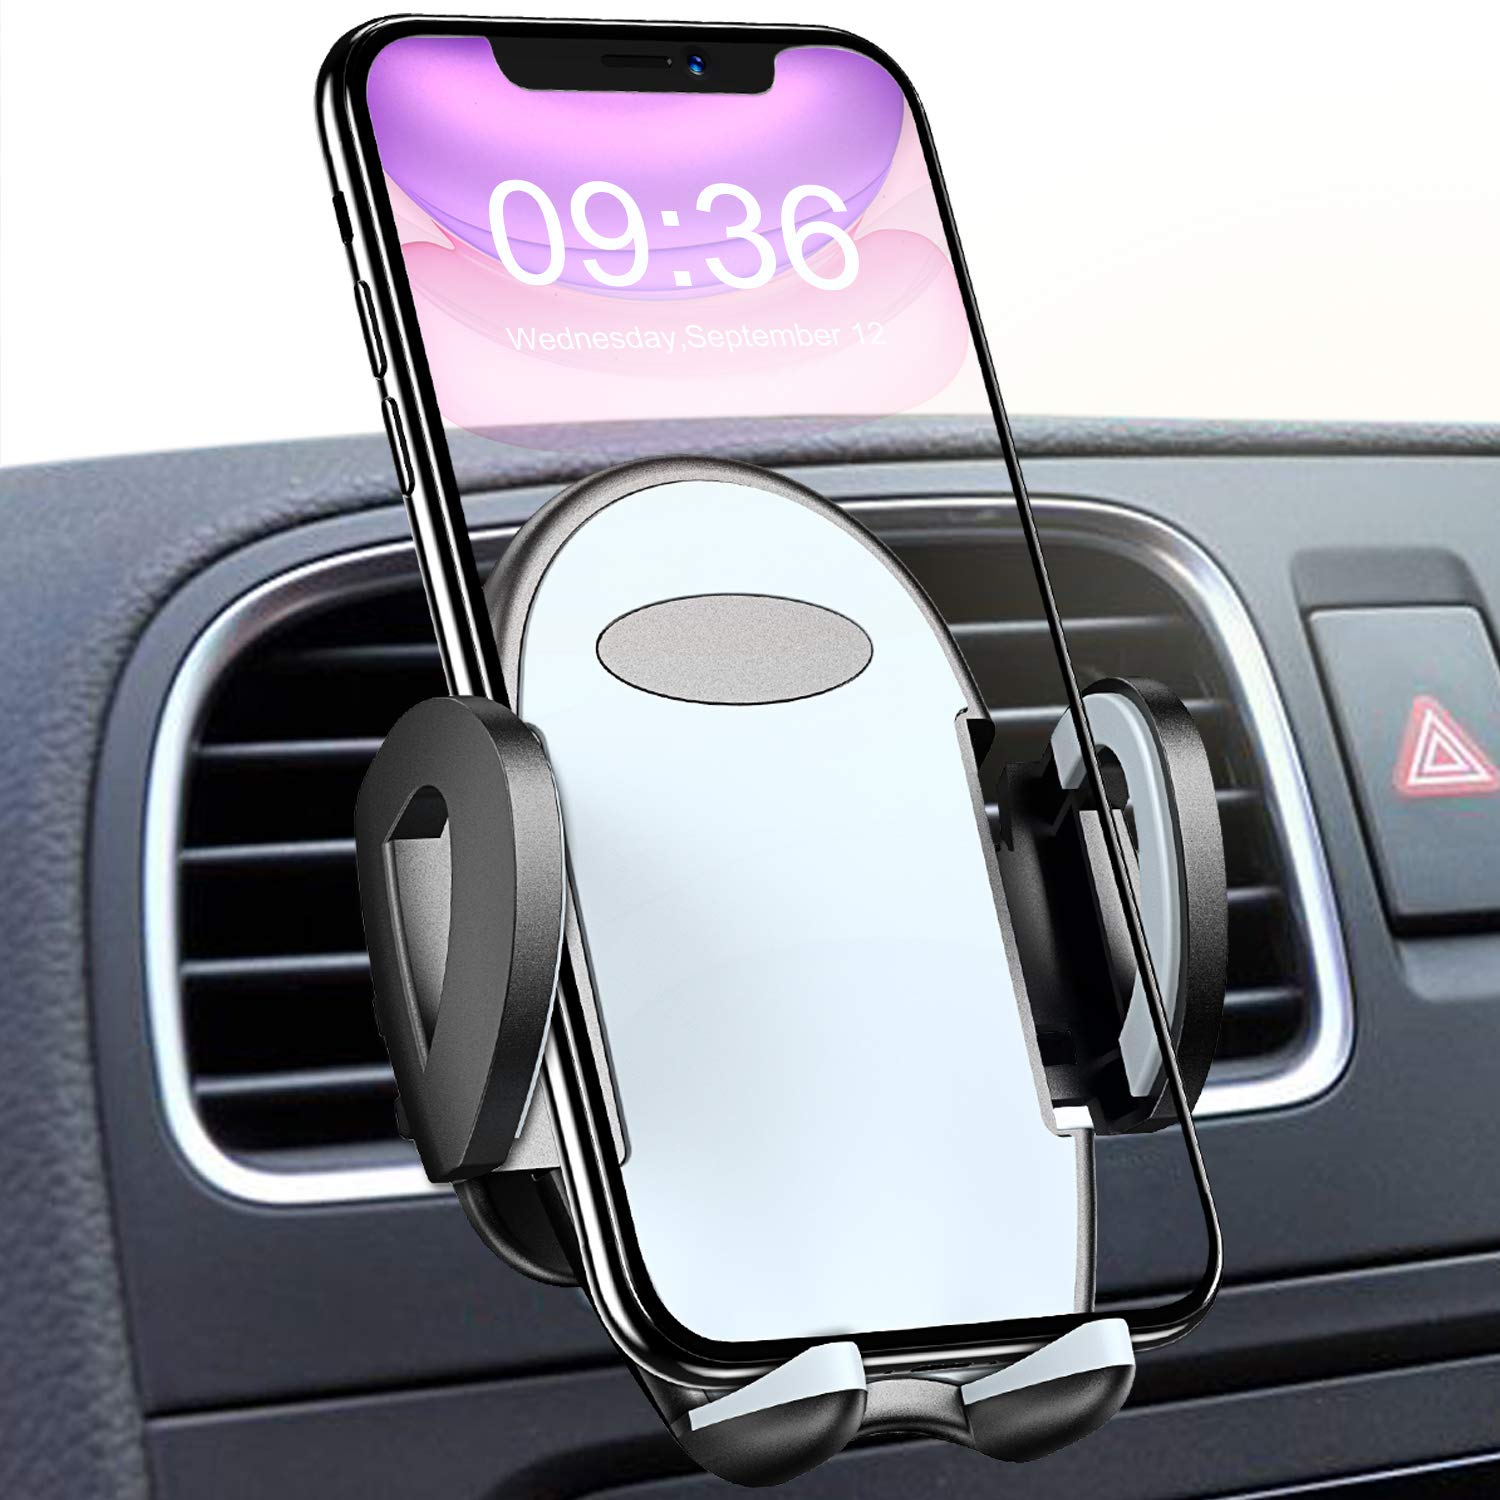 Huawei Cellphones Google Pixel Car Phone Holder Air Vent TEUMI Cell Phone Holder for Car 2-Level Adjustable Hands Free Car Phone Mount Compatible with iPhone 11 Pro Max XS Max XR X 8 7 Plus Galaxy S10 Plus S10e S9 S8 Note 10 9 8